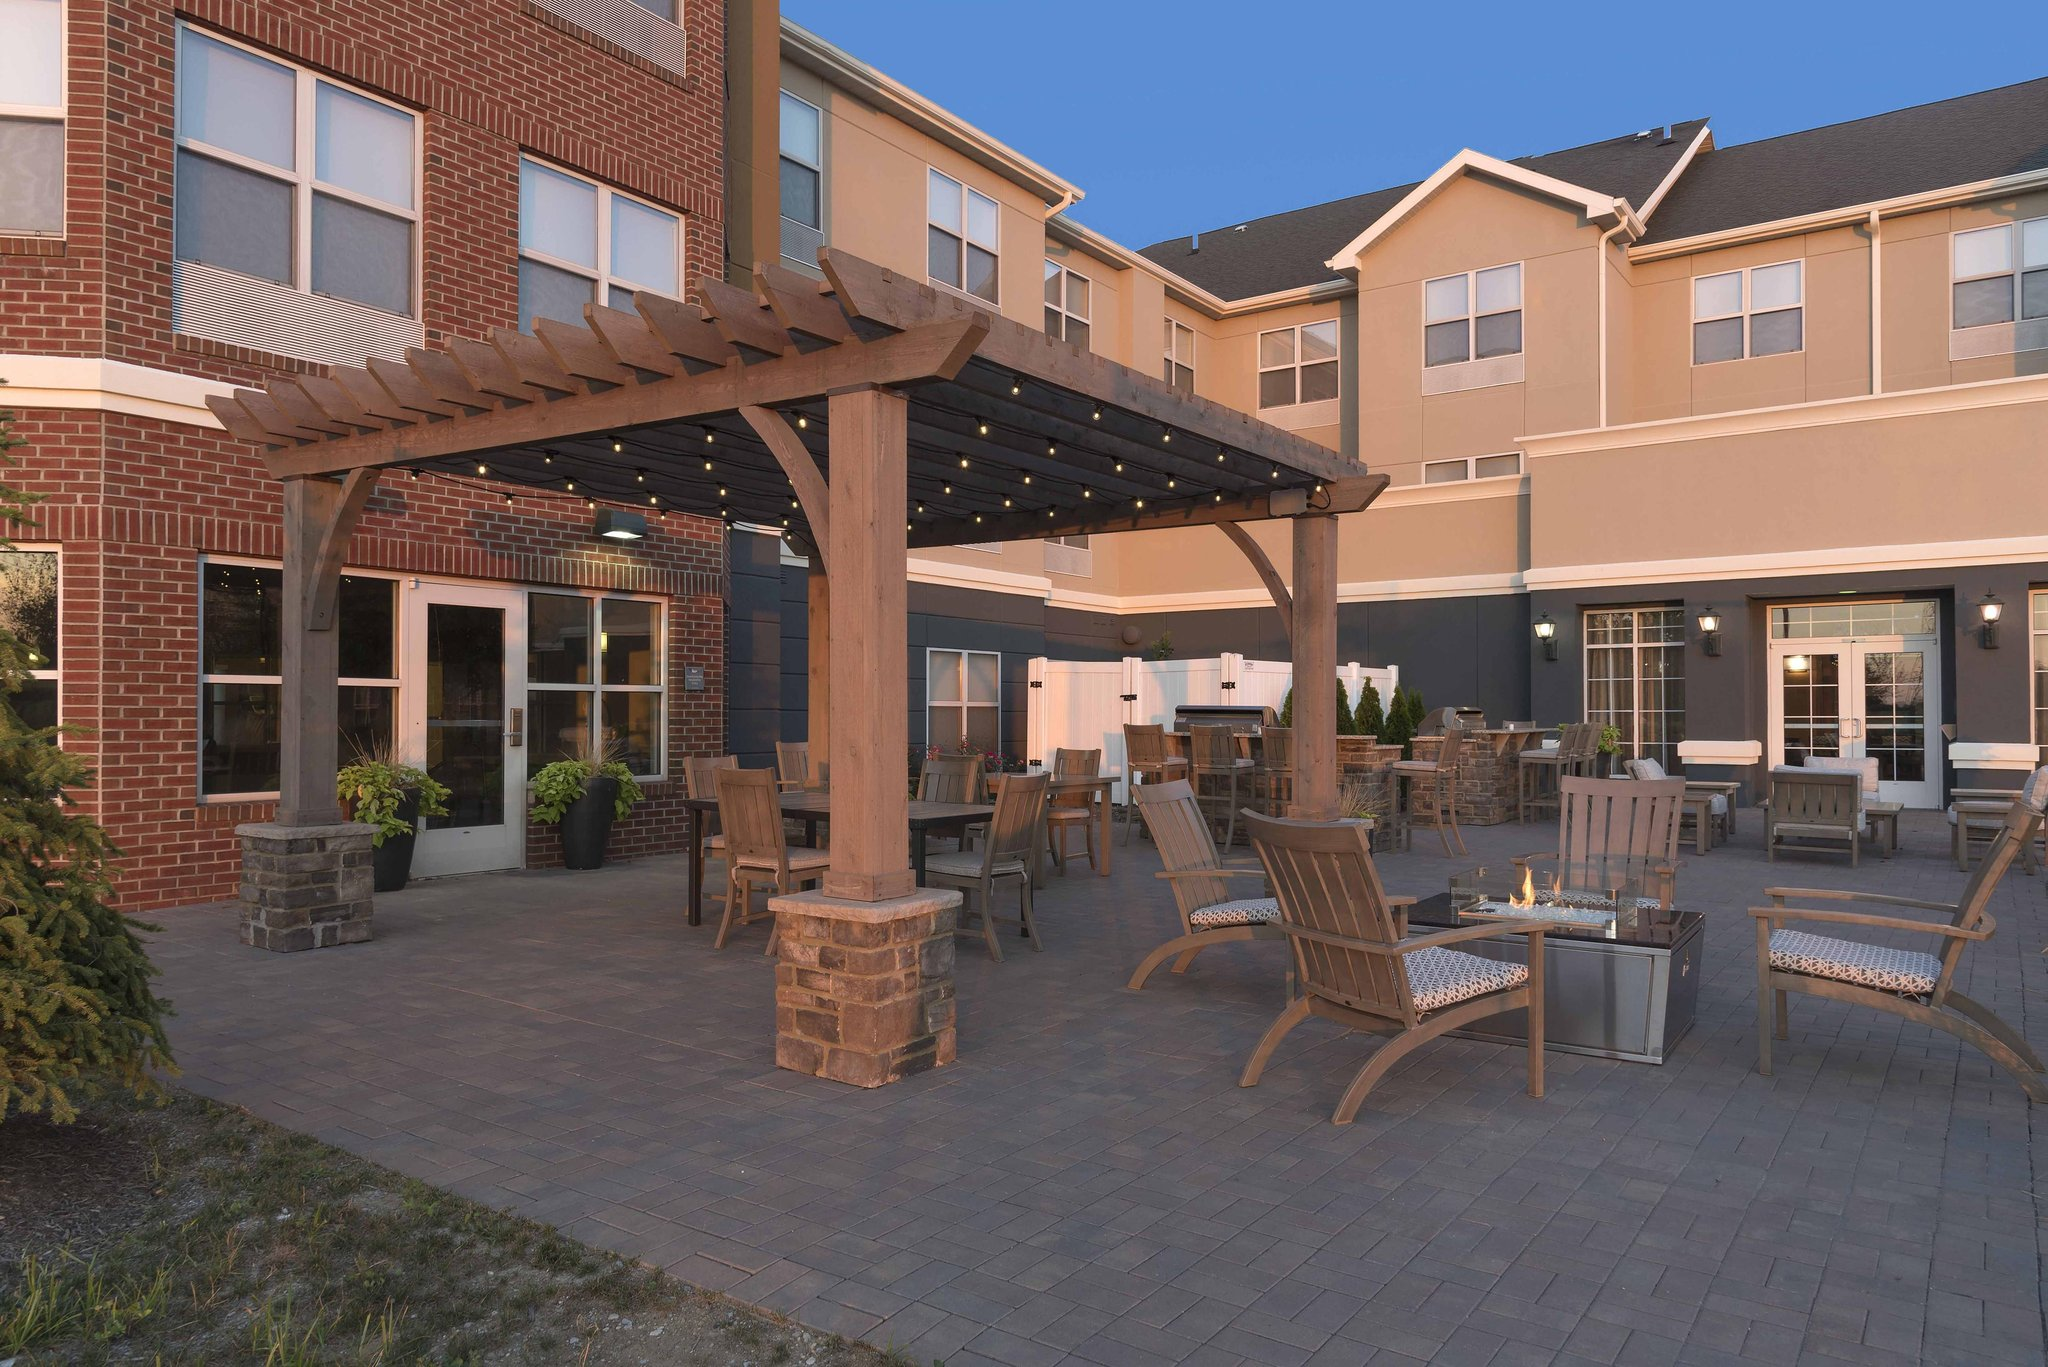 Homewood Suites by Hilton Indpls Airport - Plainfield IN